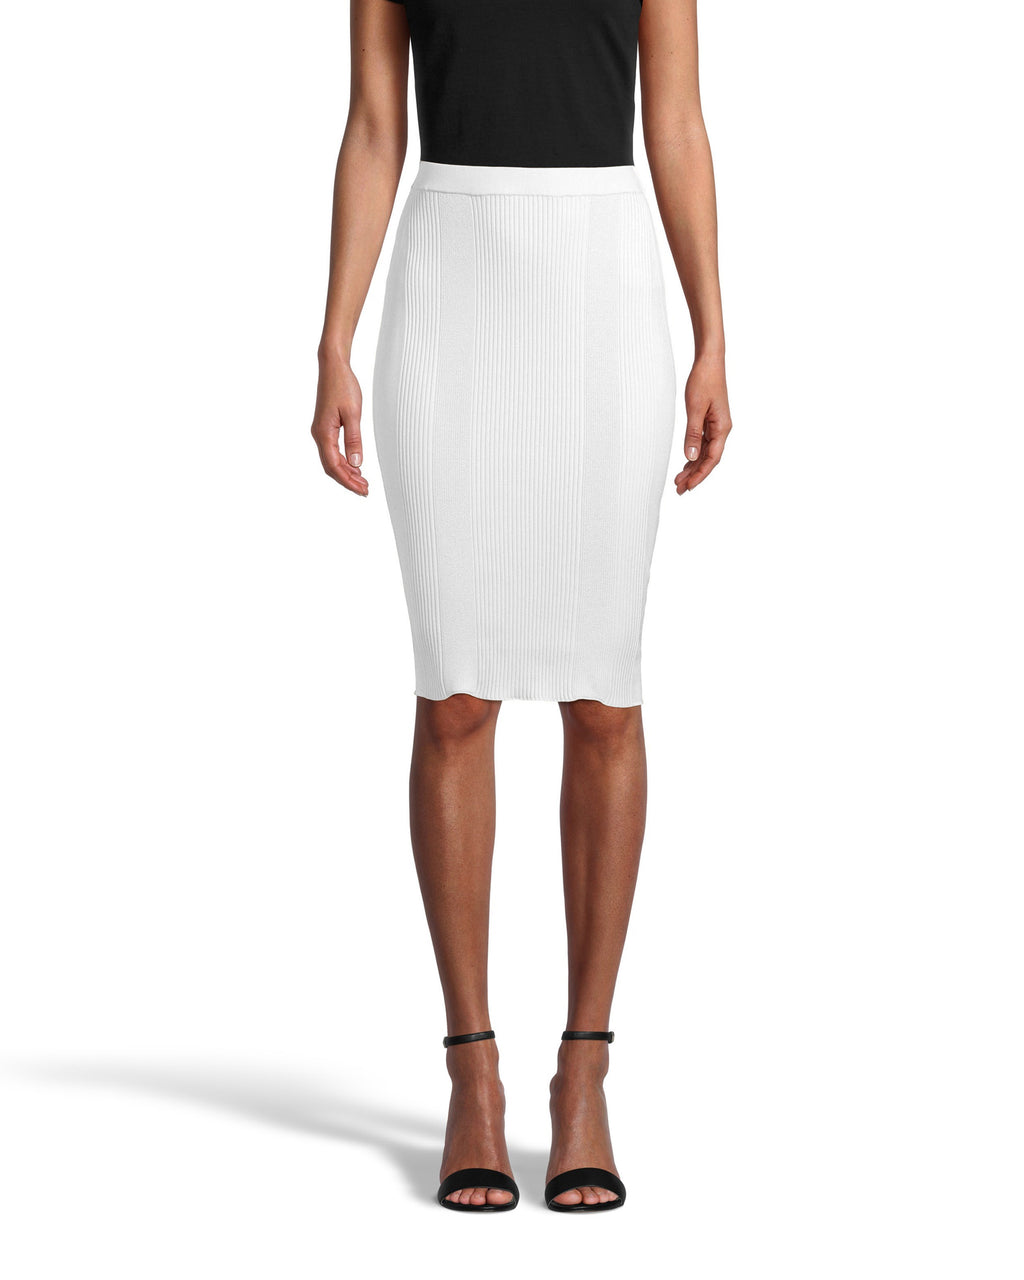 CS18566 - KNIT PENCIL SKIRT - bottoms - skirts - Designed in a super soft ribbed fabrication, this pencil skirt hugs and flatters your curves for a classic and flattering effect. This pull on piece is easy yet elevated and hits just above the knee for a full coverage fit. Add 1 line break Stylist tip: Pair with one of our printed button downs for a professional yet stylish look.